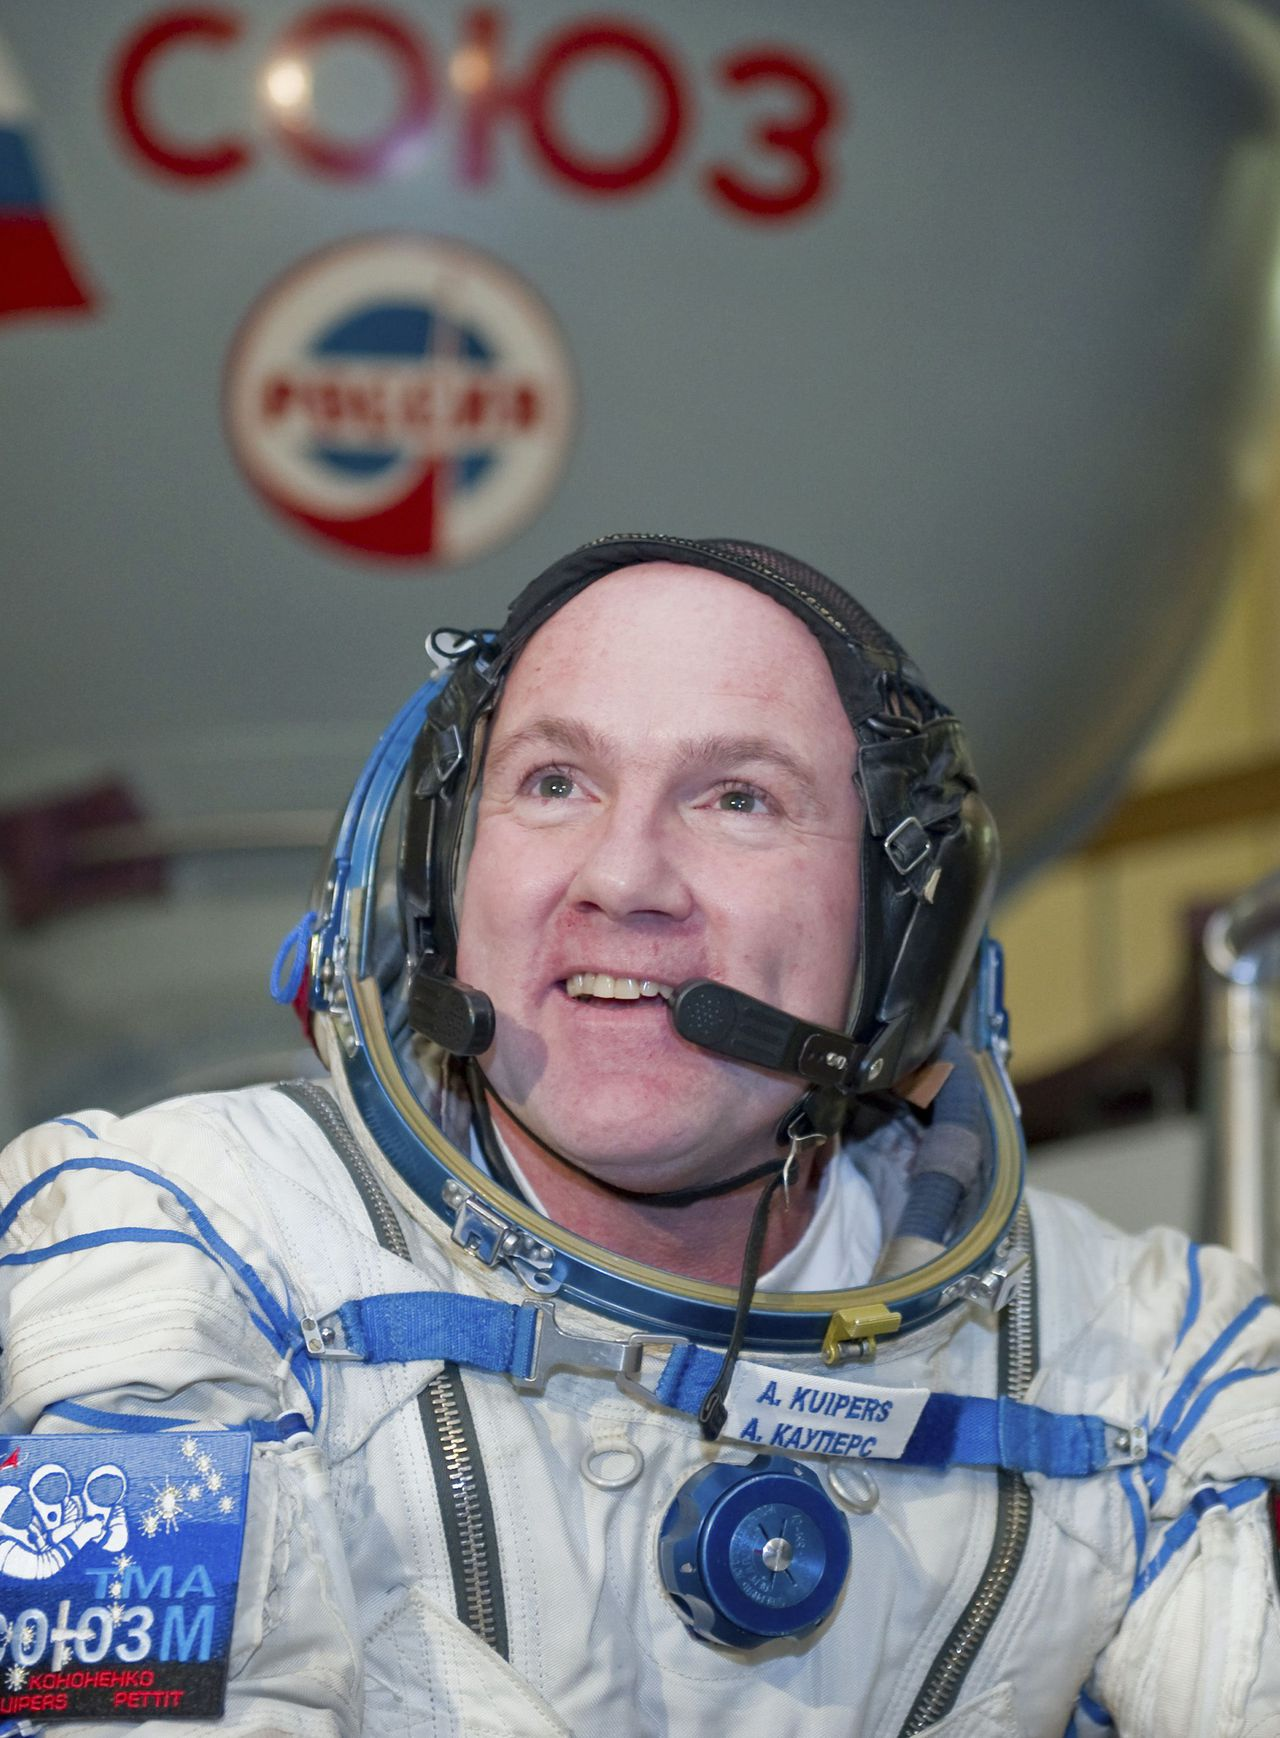 Dutch astronaut Andre Kuipers sits in a space suit before a training exercise at the Star City space centre outside Moscow November 30, 2011. Kuipers is part of a three-man team scheduled to fly to the International Space Station on December 21. REUTERS/Sergei Remezov (RUSSIA - Tags: TRANSPORT SCIENCE TECHNOLOGY SOCIETY HEADSHOT)